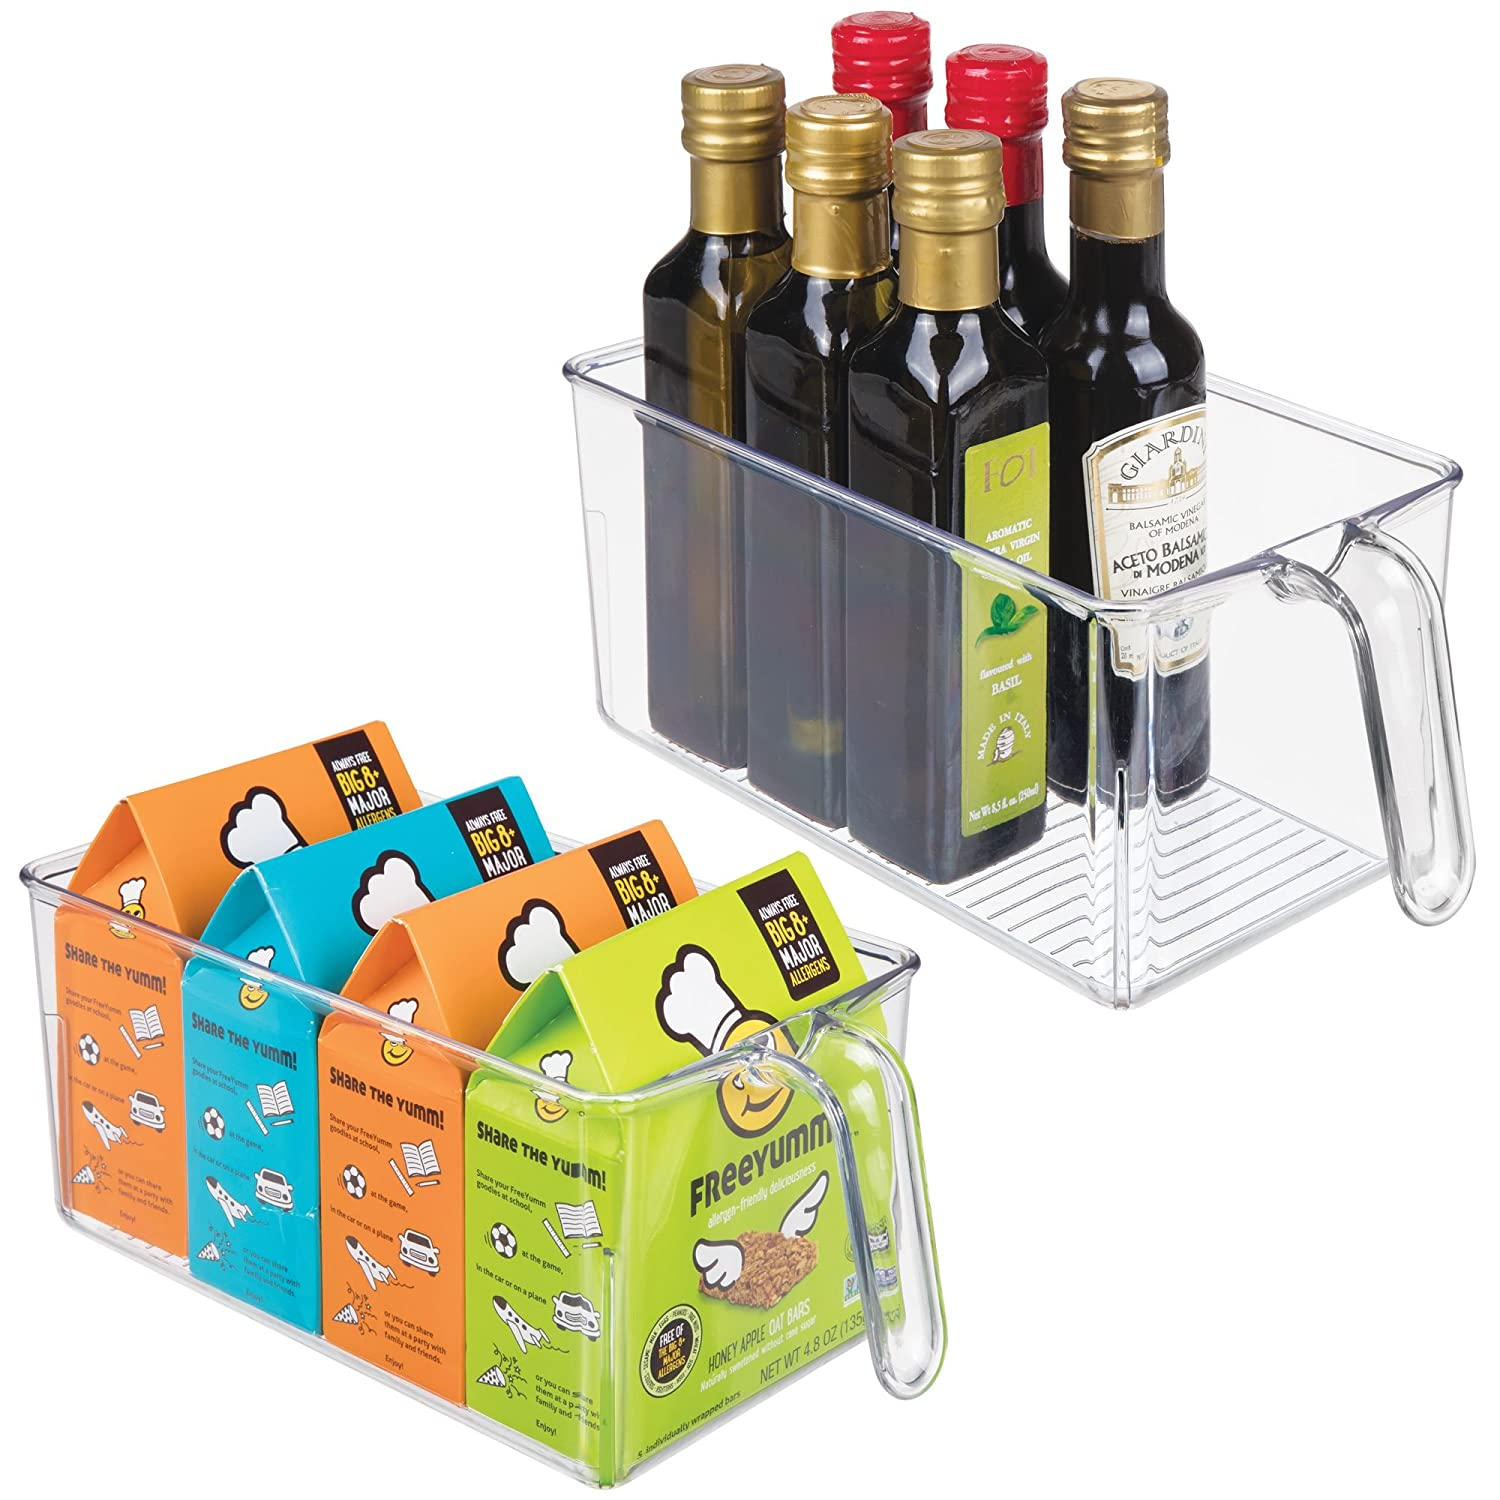 mDesign Plastic Kitchen Pantry Cabinet Refrigerator Storage Organizer Bin Holder with Front Handle - for Organizing Individual Packets, Snacks, Produce, Pasta - BPA Free - Medium, 2 Pack - Clear